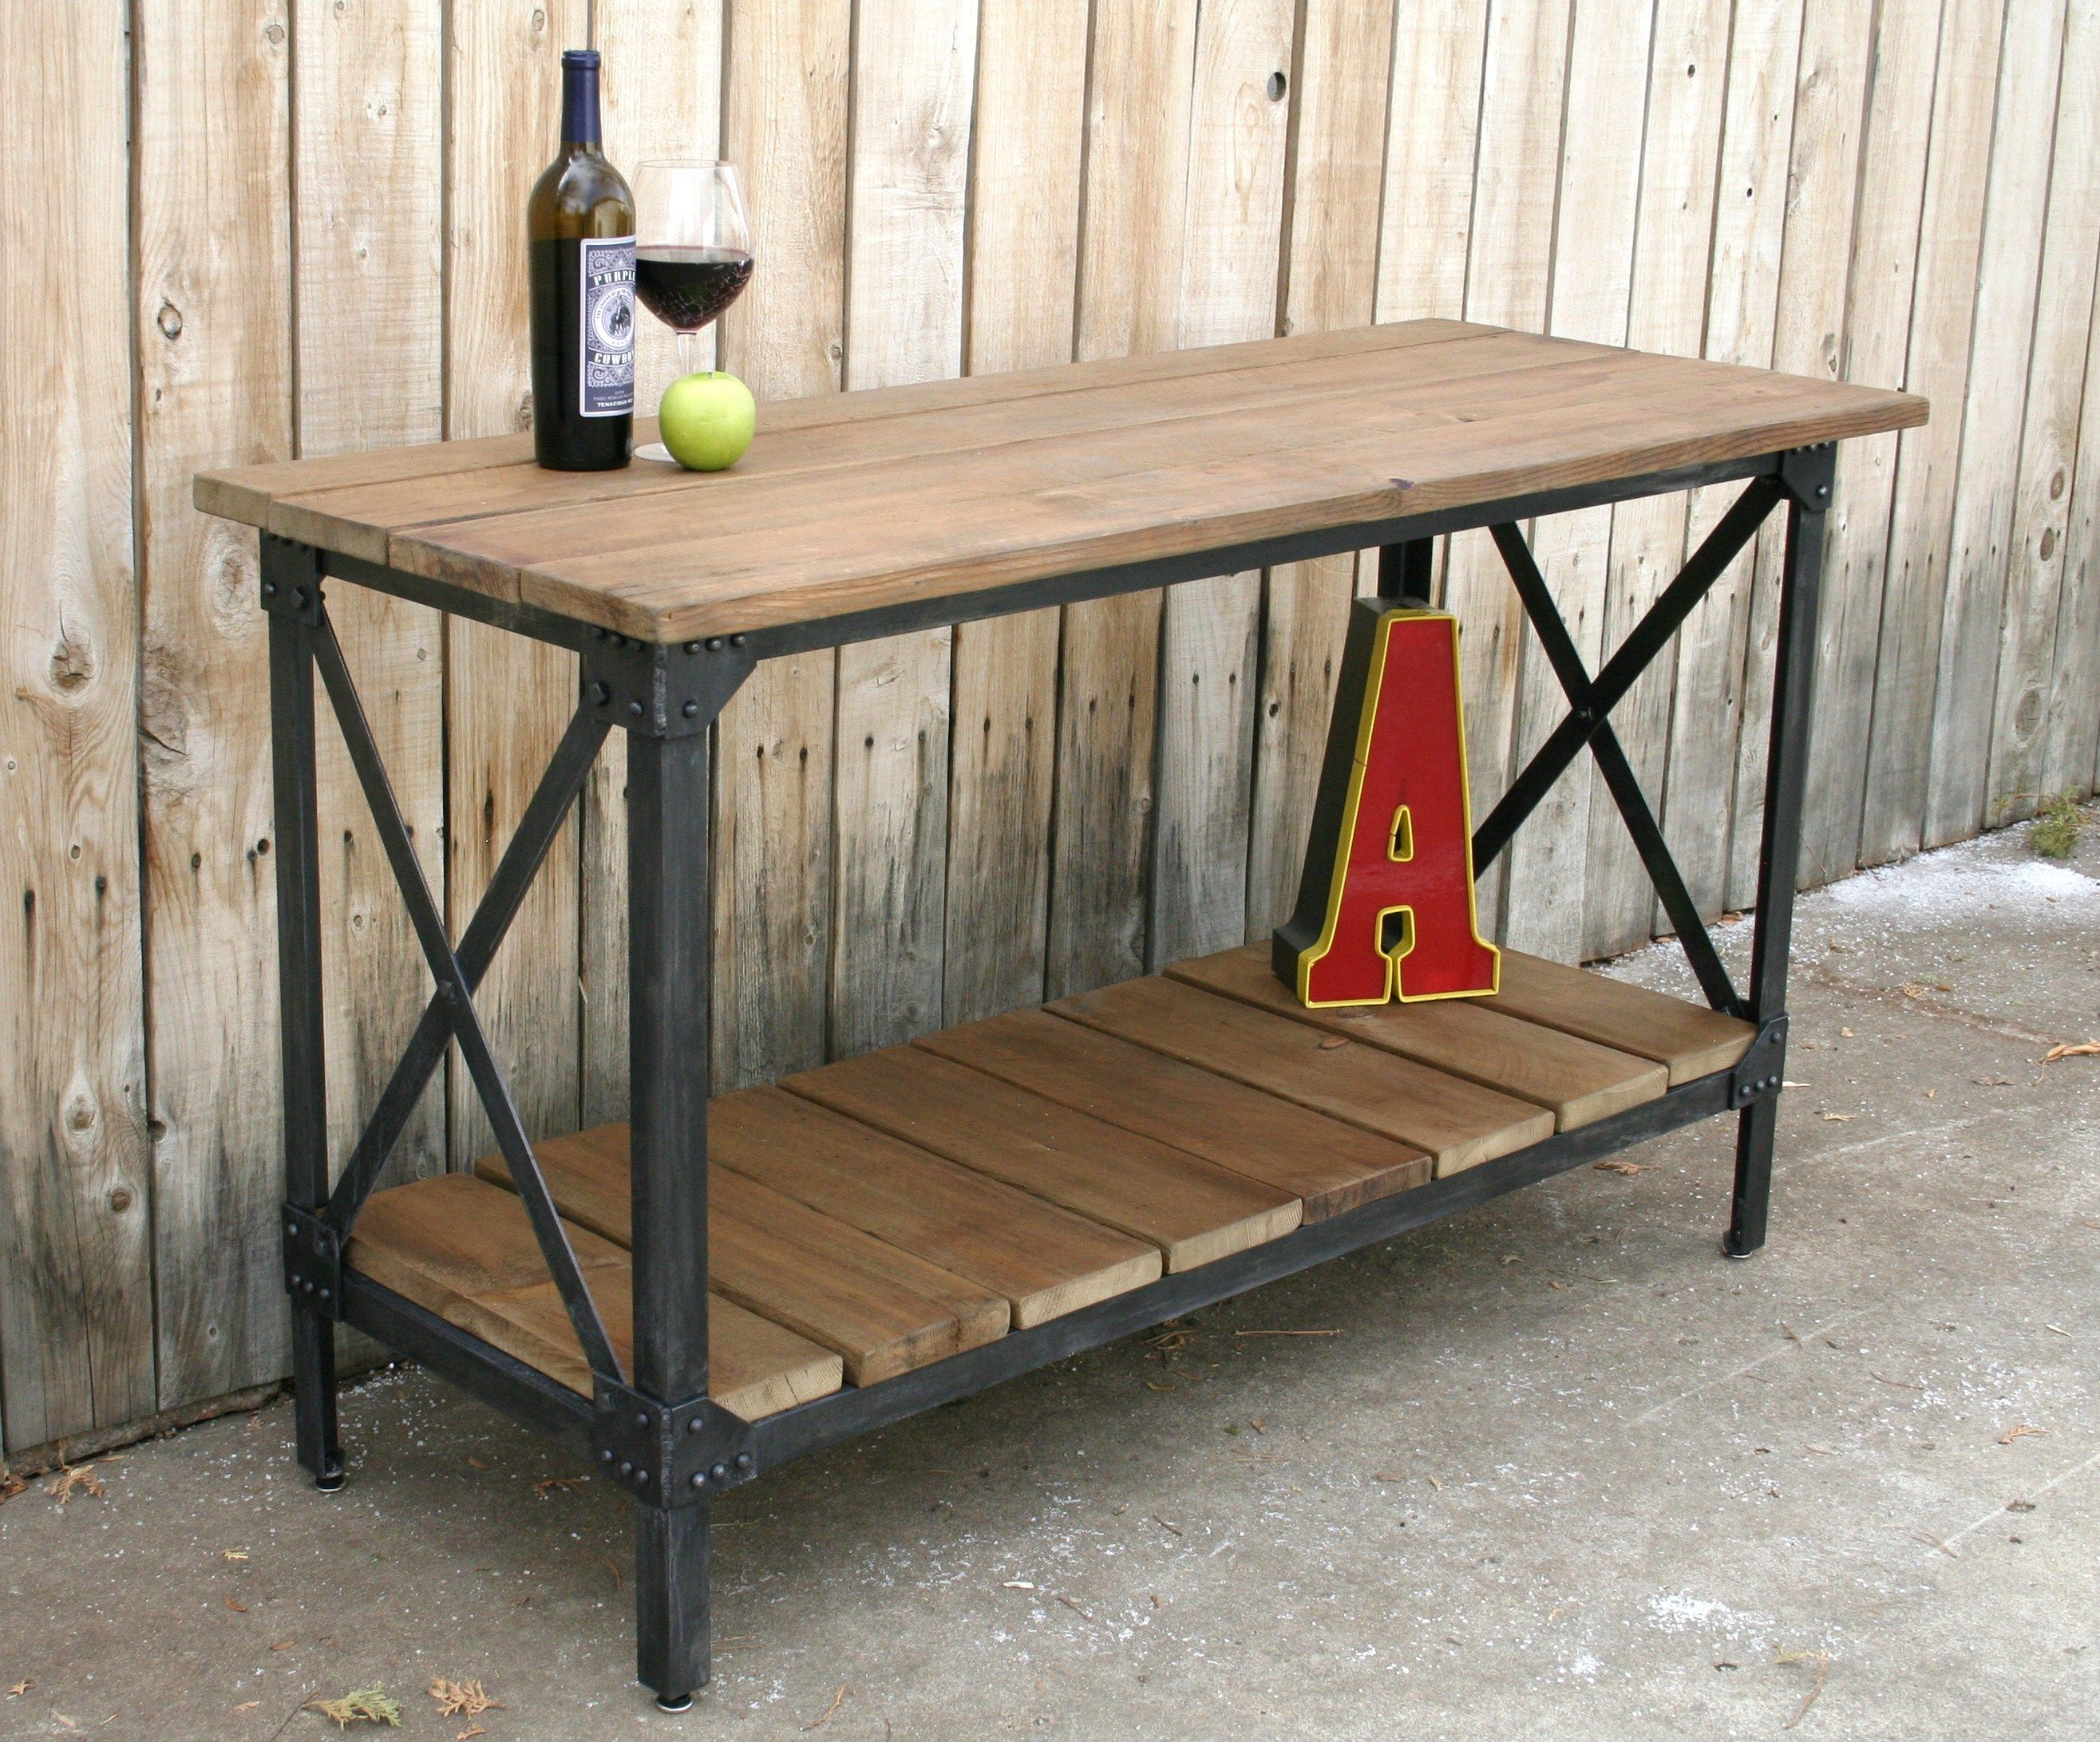 Wood & Metal Industrial Rustic Console Table Accent Table Liquor